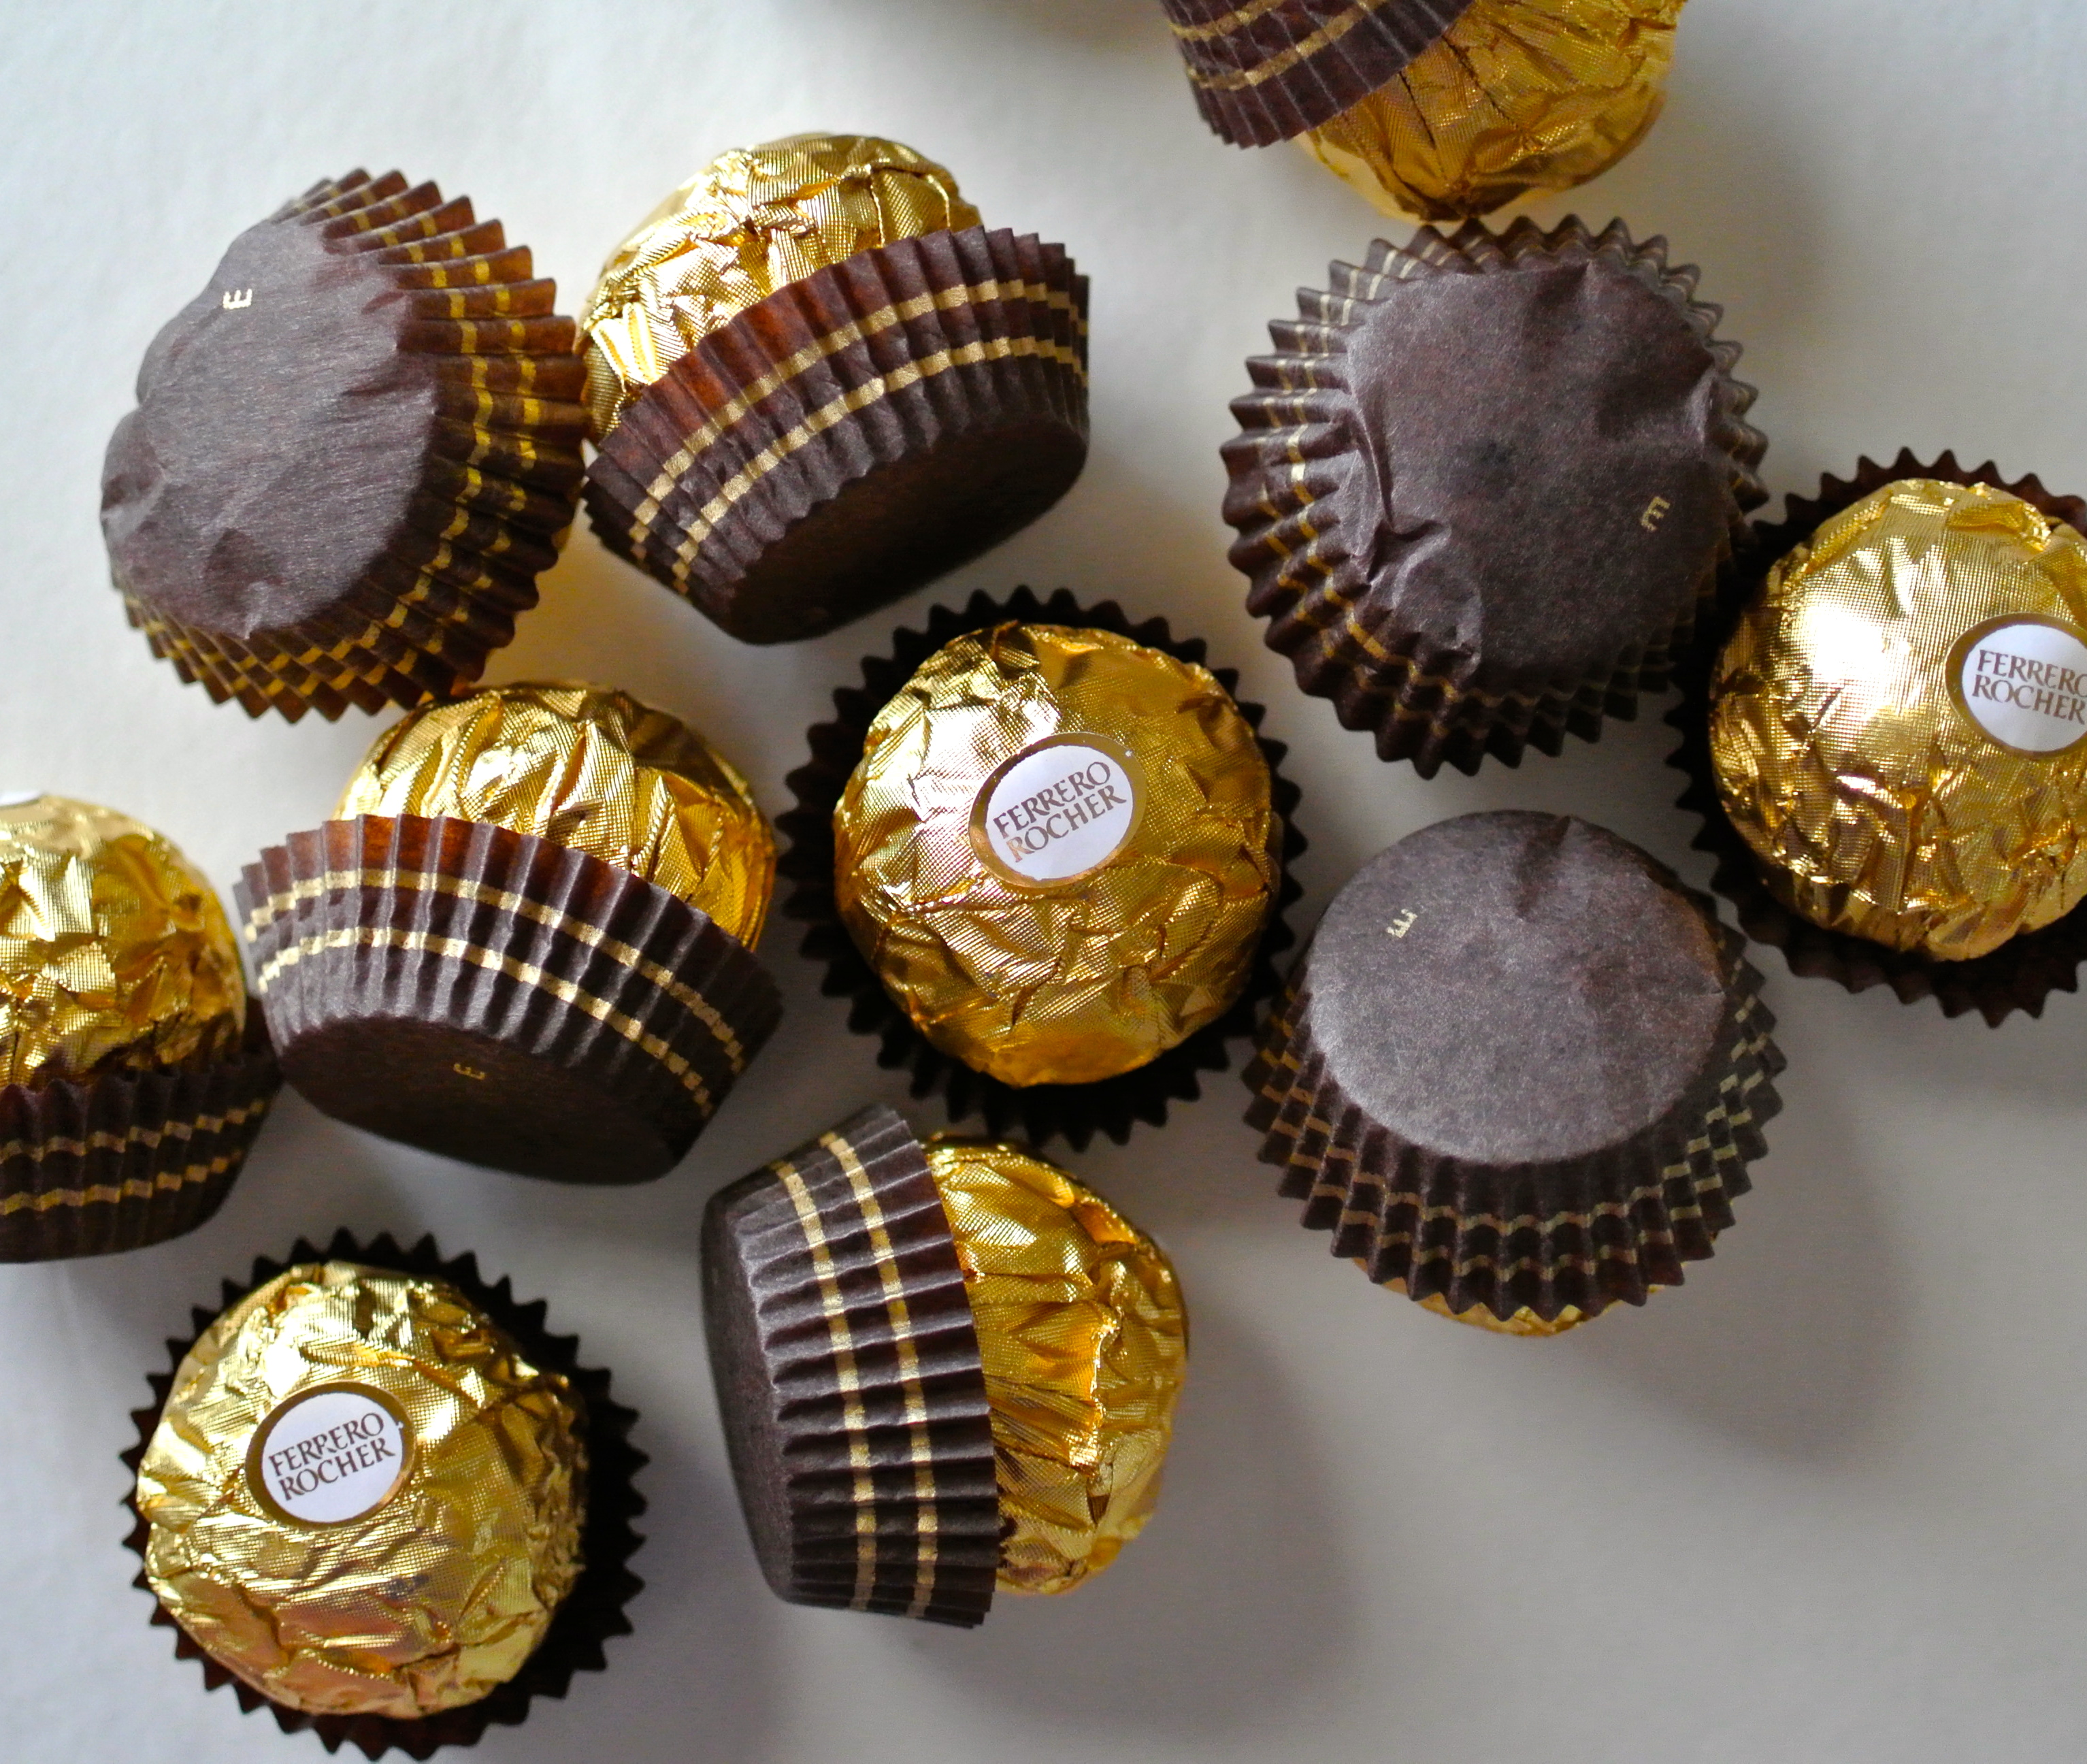 8 Interesting Facts About Ferrero Rocher Nobody Told You